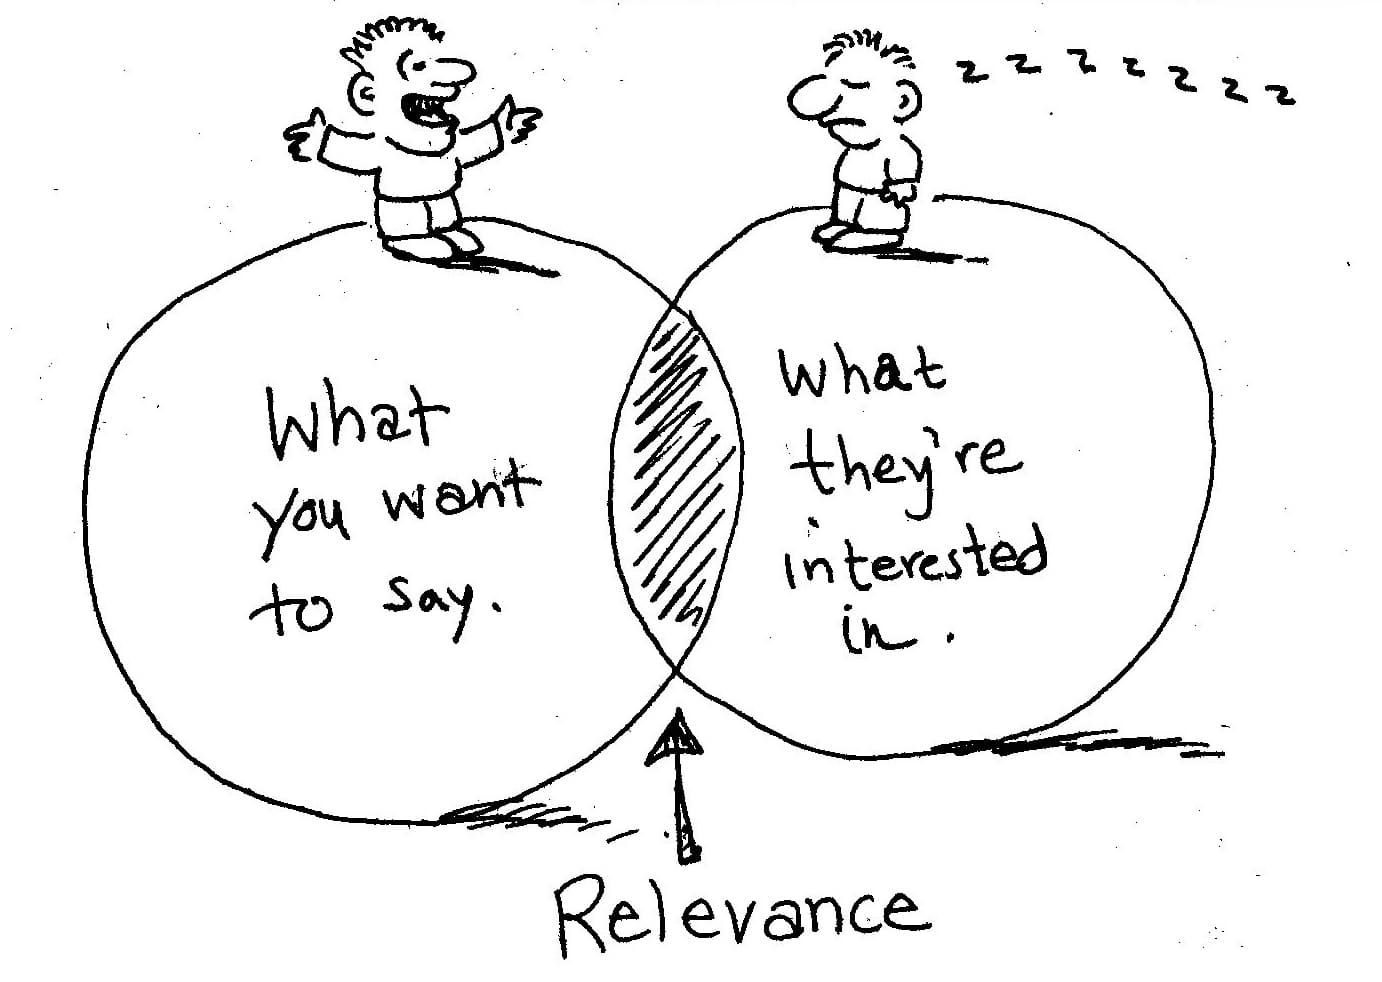 A comic-style drawing demonstrating 'content relevance'. The balance between what you want to say and what people are interested in.